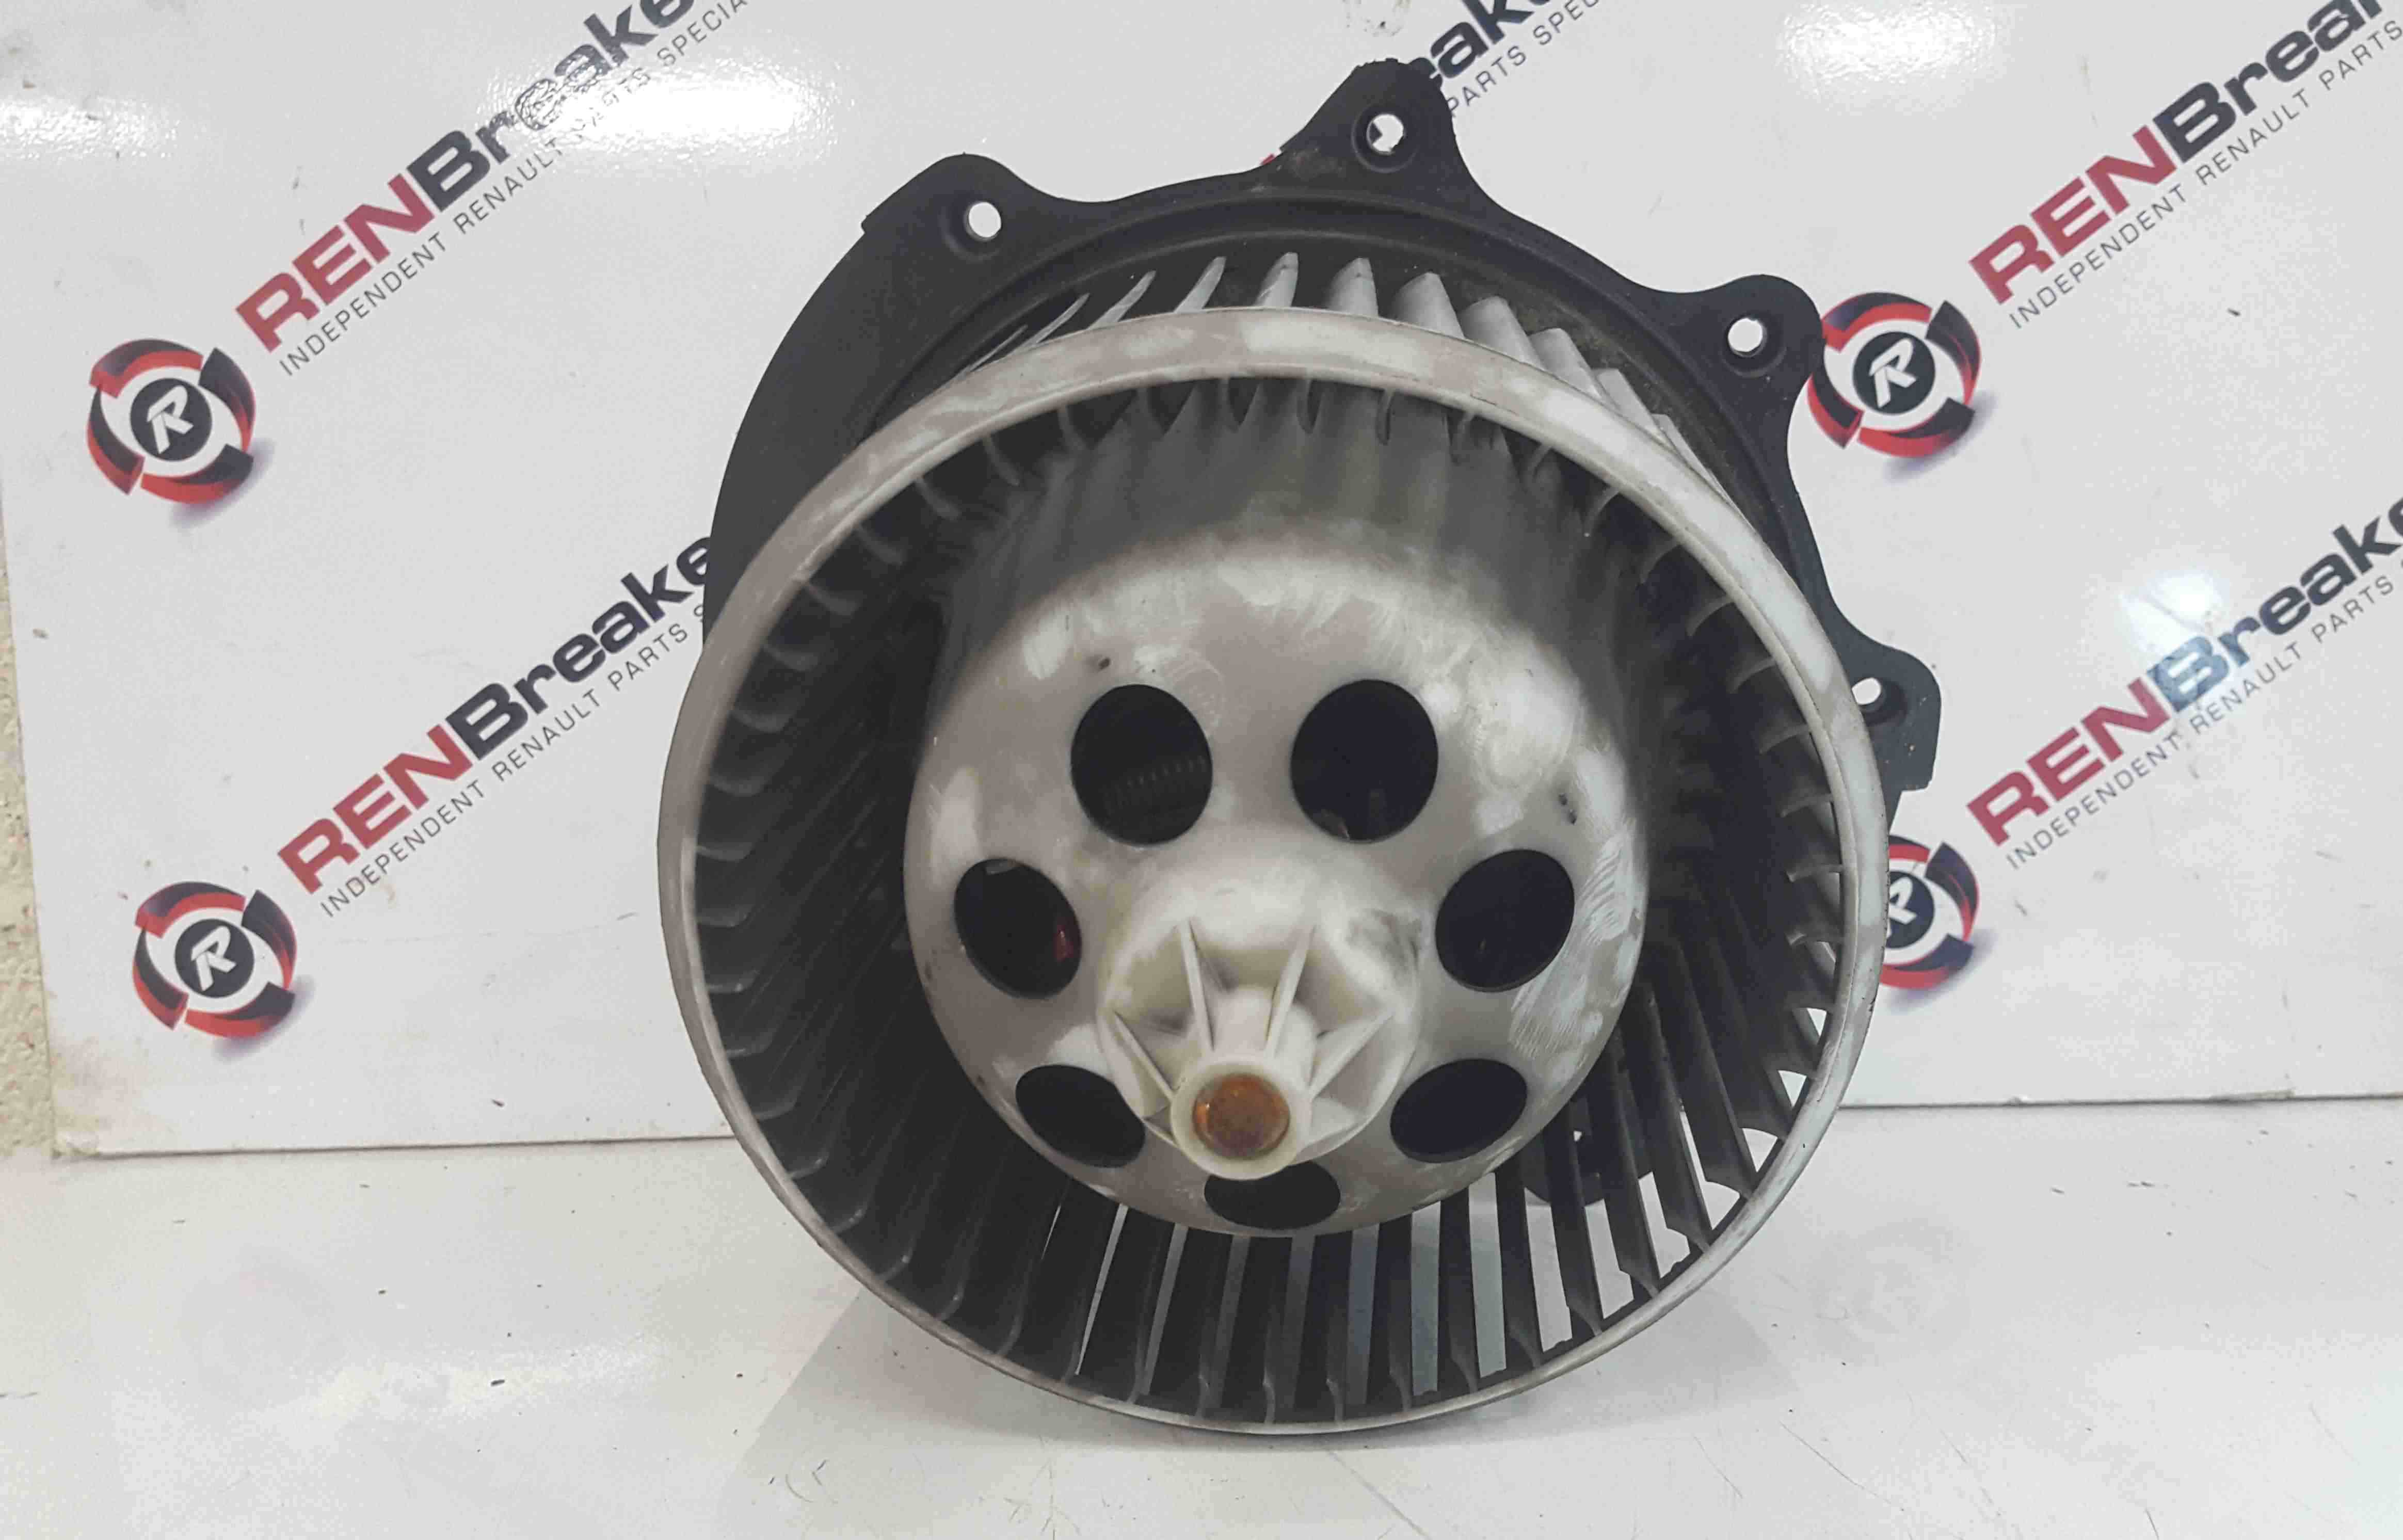 Renault Espace 2003-2013 Heater Blower Motor Fan 52492209